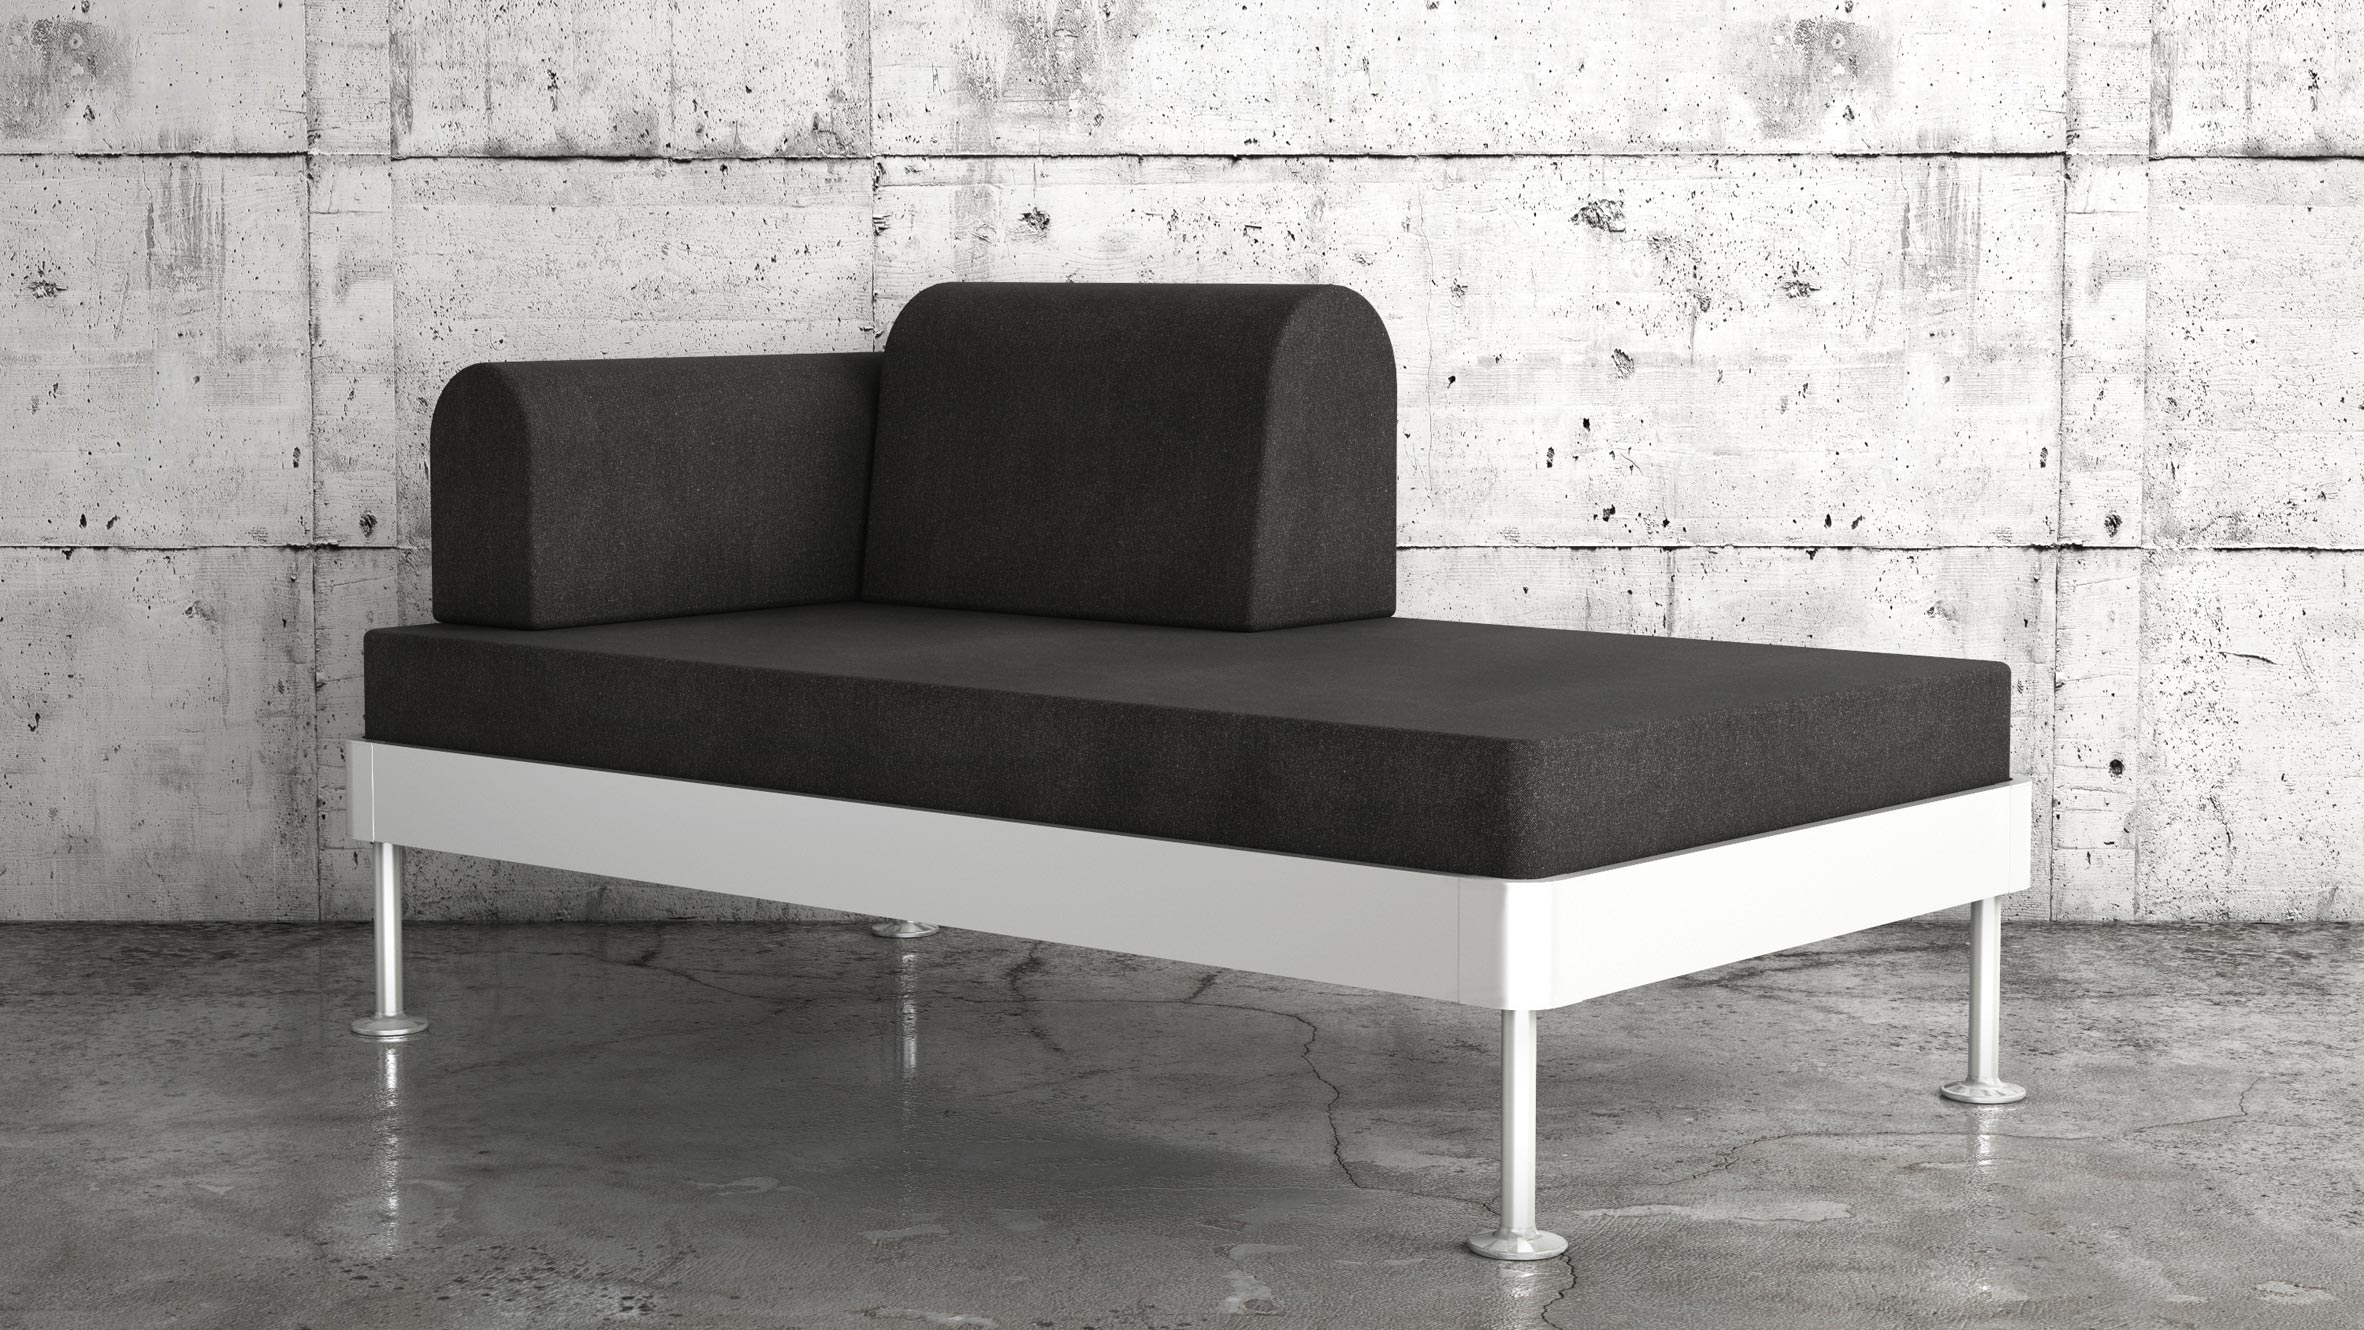 Mobile sofa d70 sofa with mobile leaves design within reach thesofa - Mobili salone ikea ...